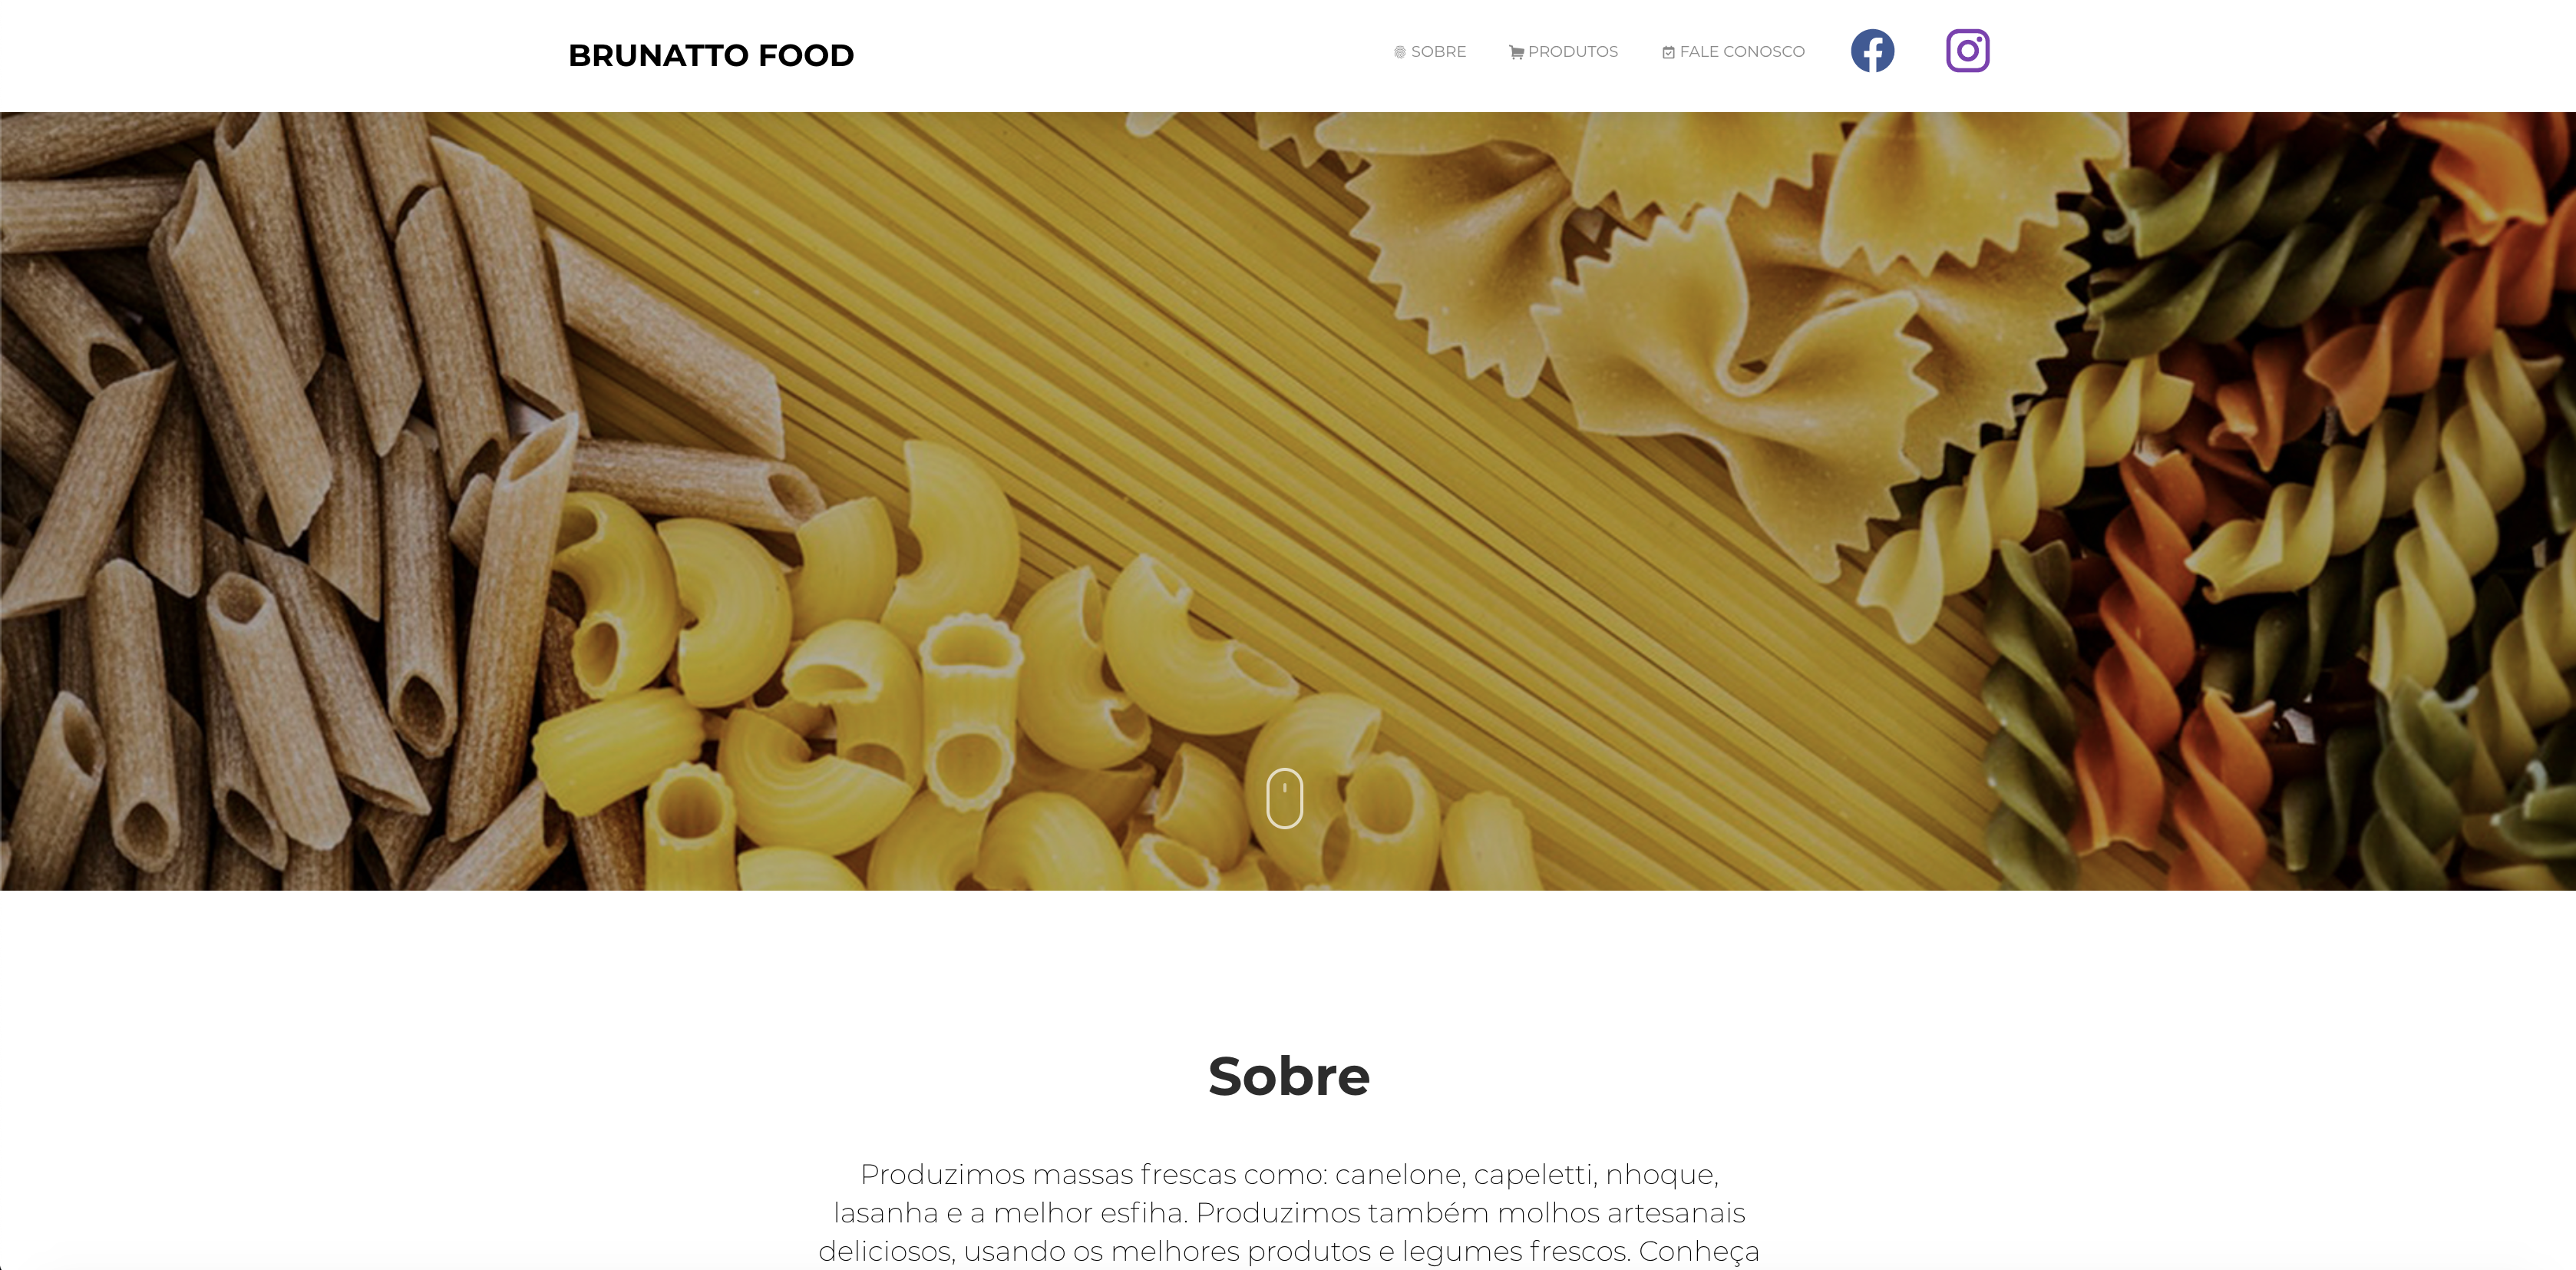 Brunatto Food